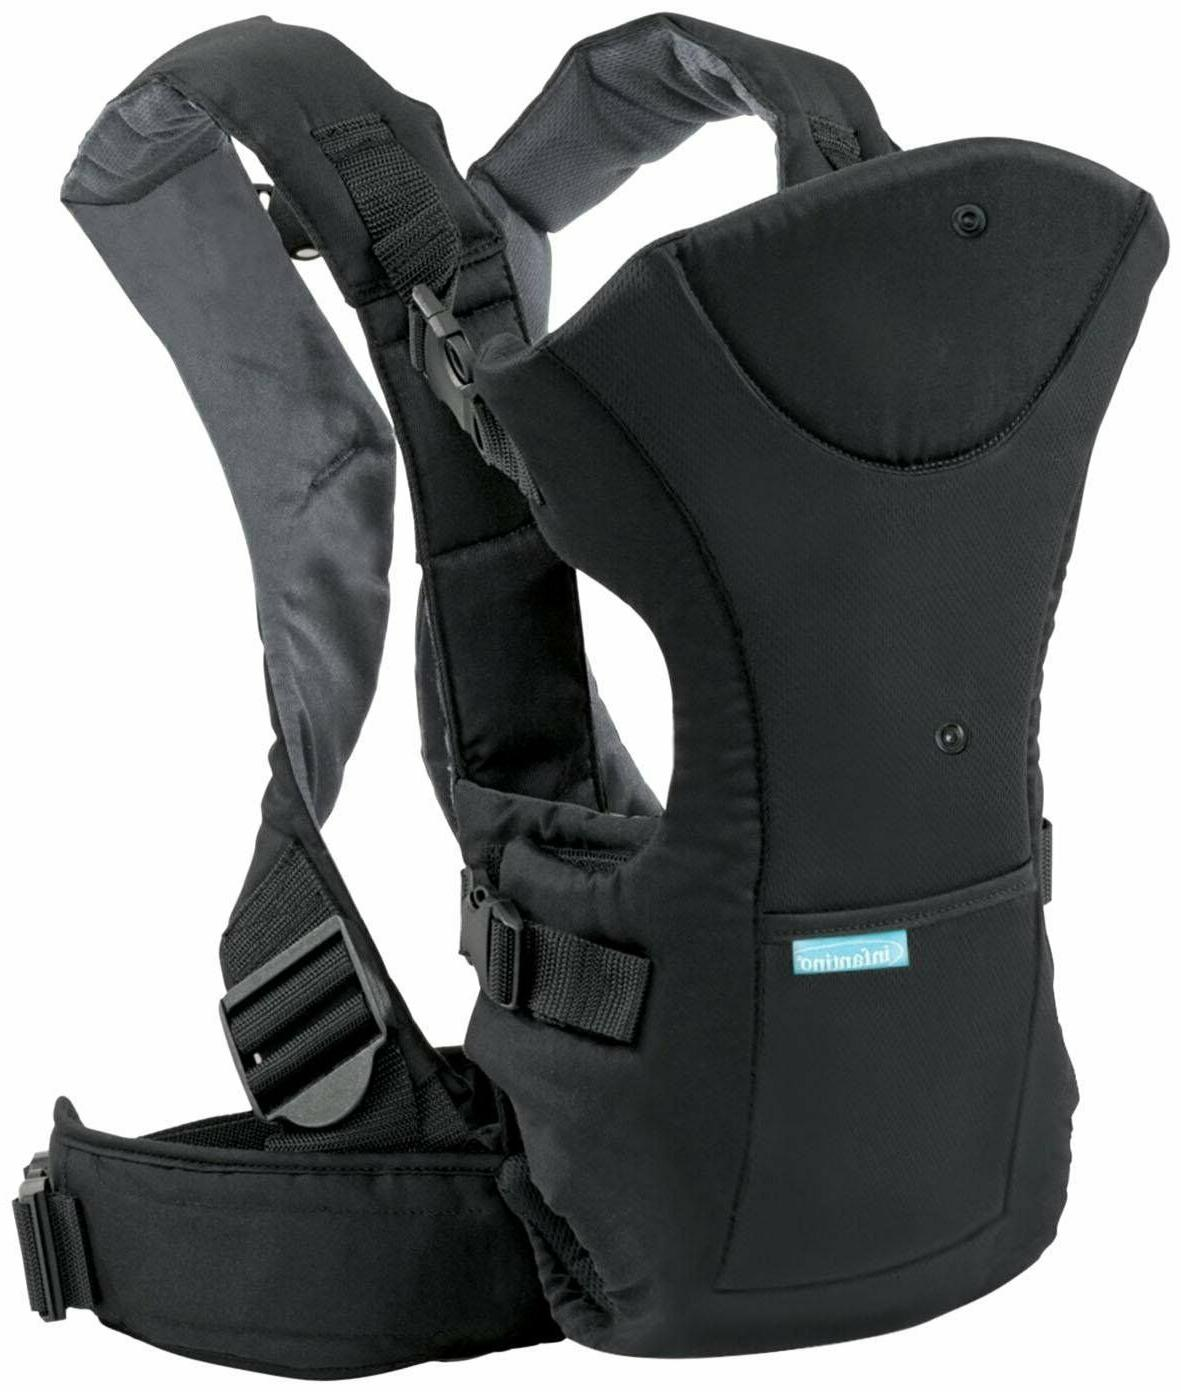 Infantino Flip Advanced 4-in-1 Convertible Carrier Newborn B